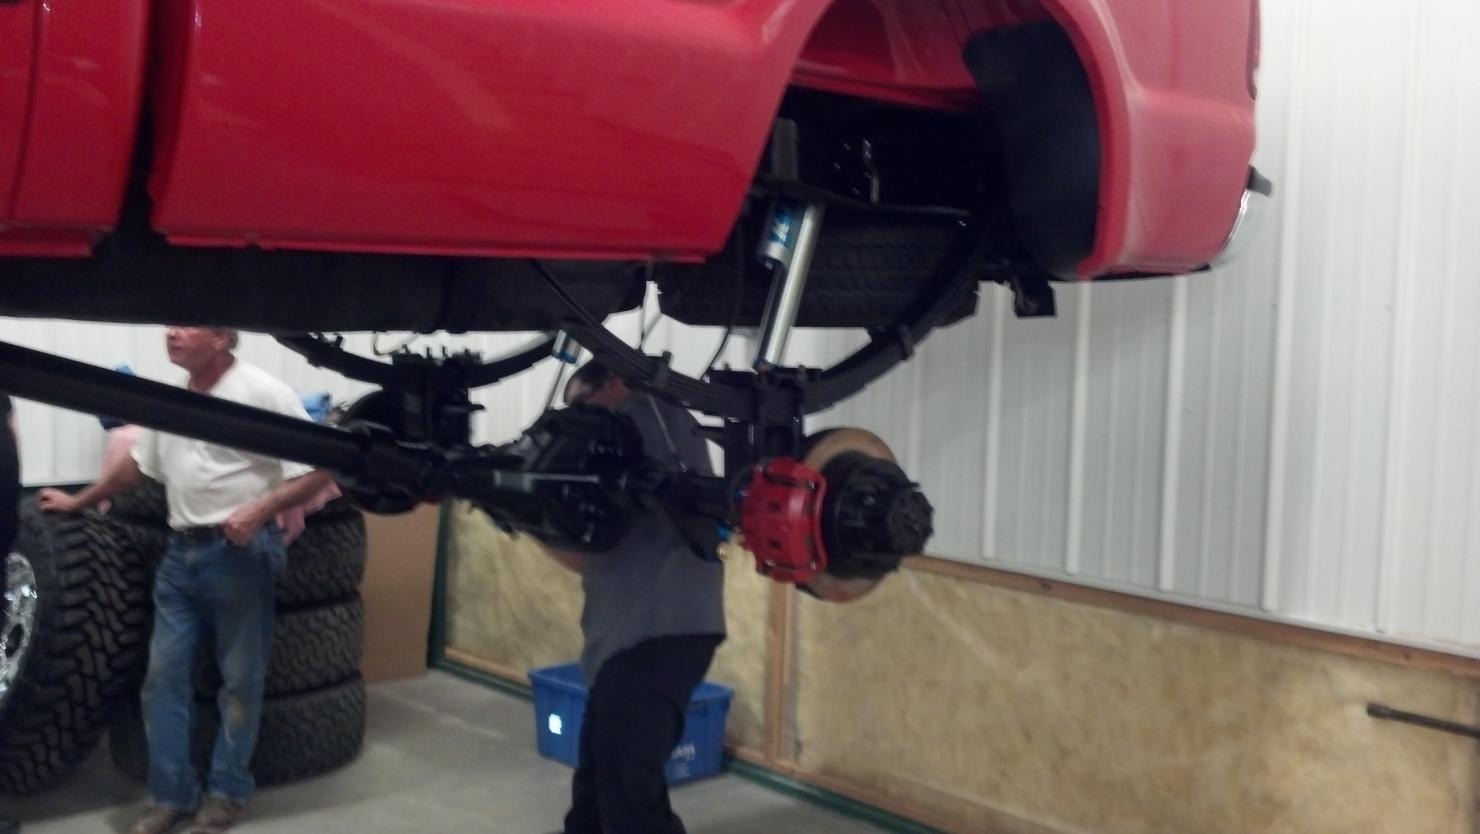 Installing 8 inch full traction lift-2012-05-24_22-03-02_535.jpg